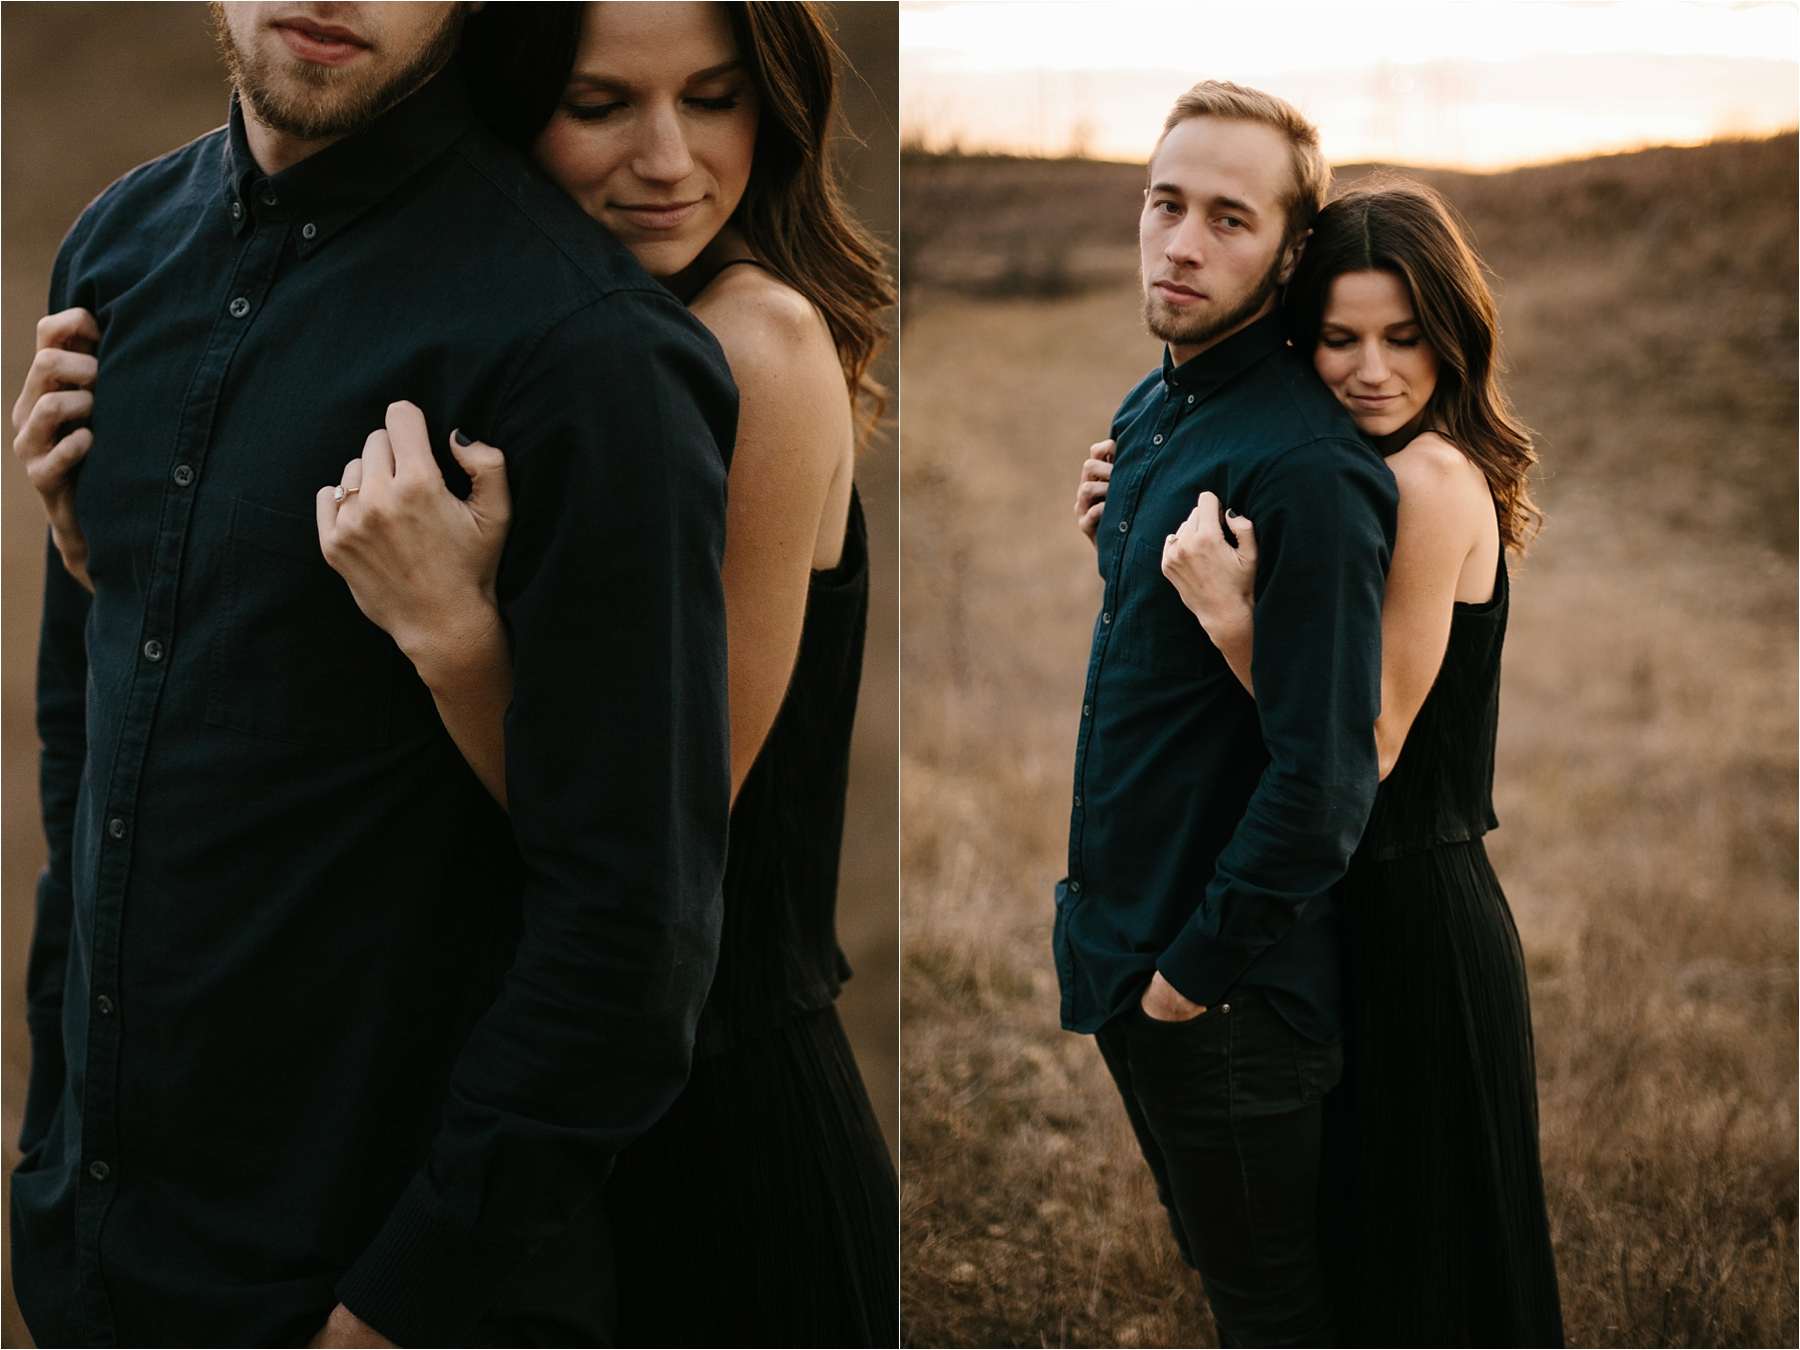 Trey + Phoebe __ a playful, intimate engagement session with dark_neutral outfit inspiration by North Texas Wedding Photographer Rachel Meagan Photography __ 40